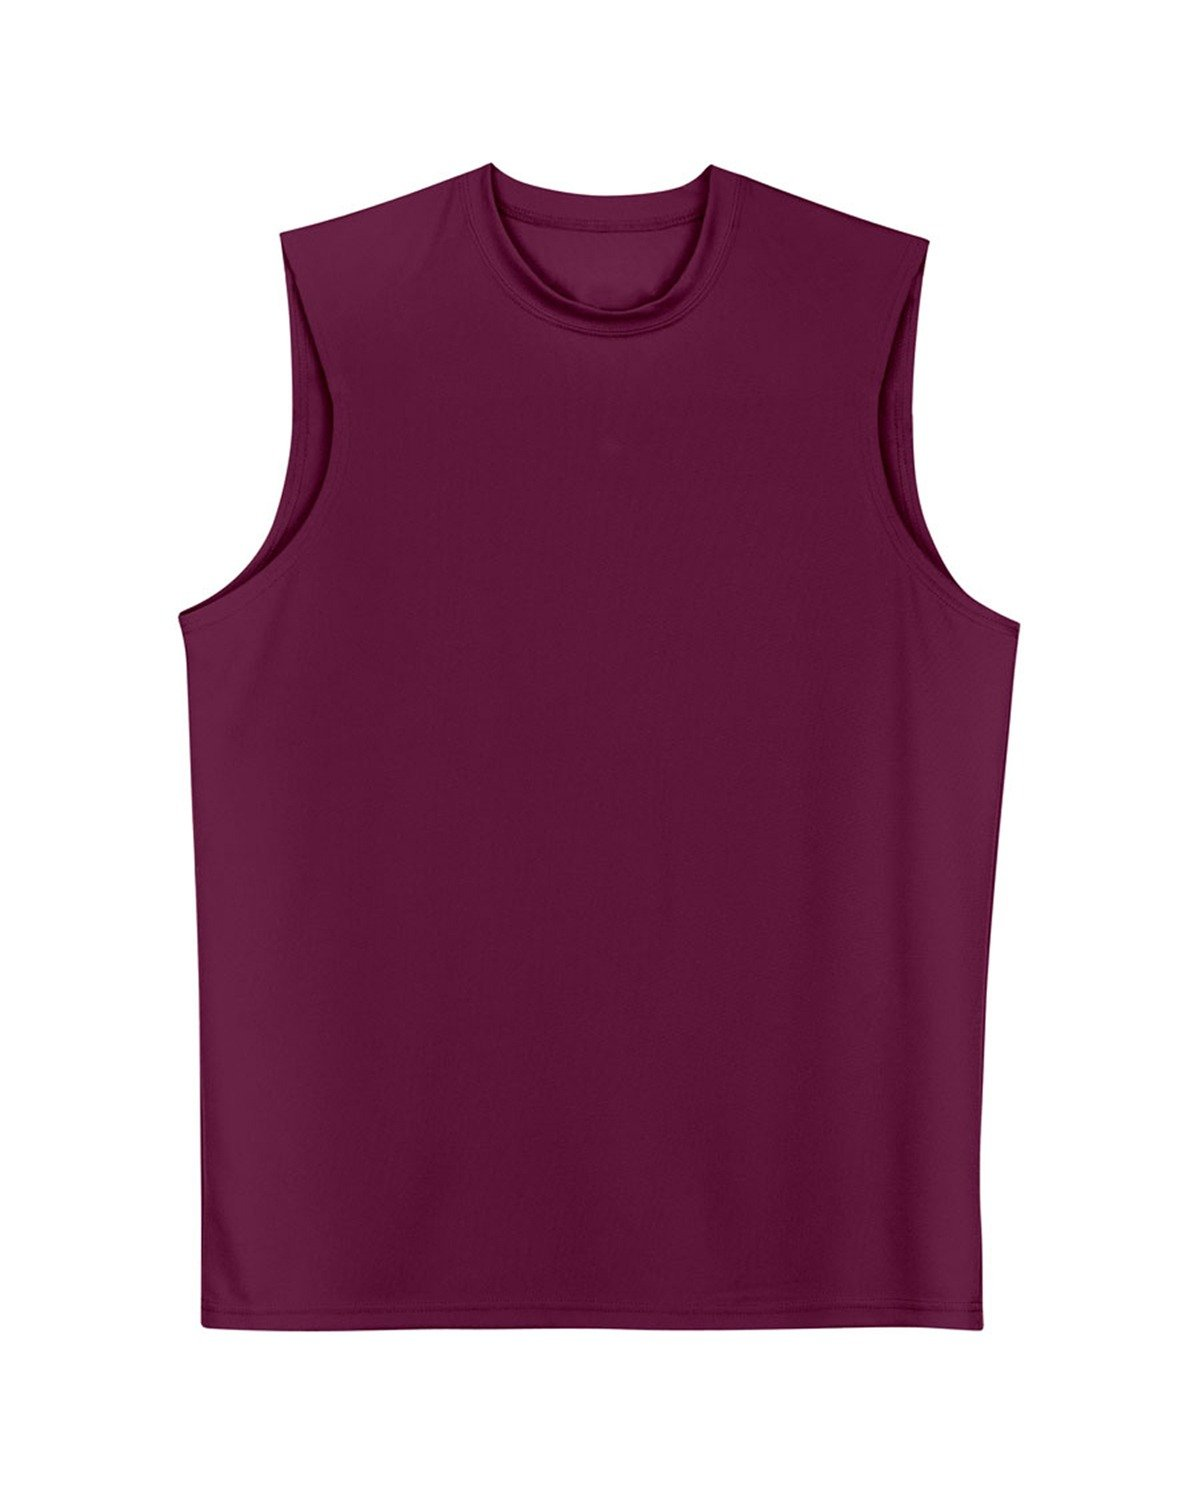 A4 Men's Cooling Performance Muscle T-Shirt MAROON